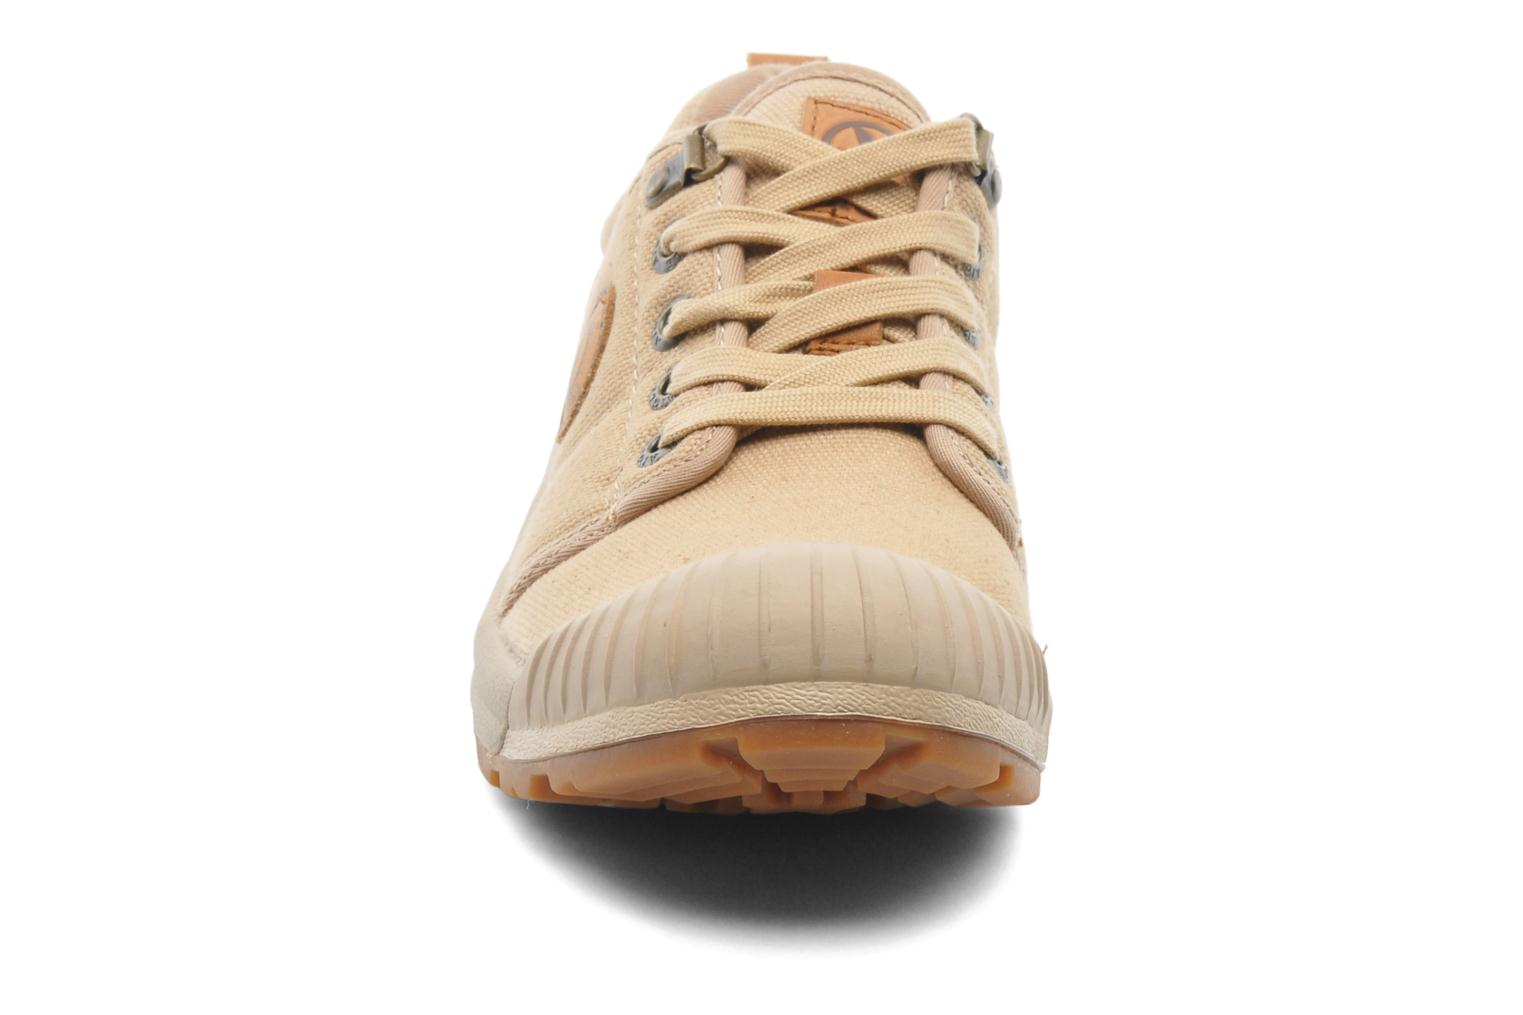 Sand Aigle Tenere Light Low W Cvs (Beige)